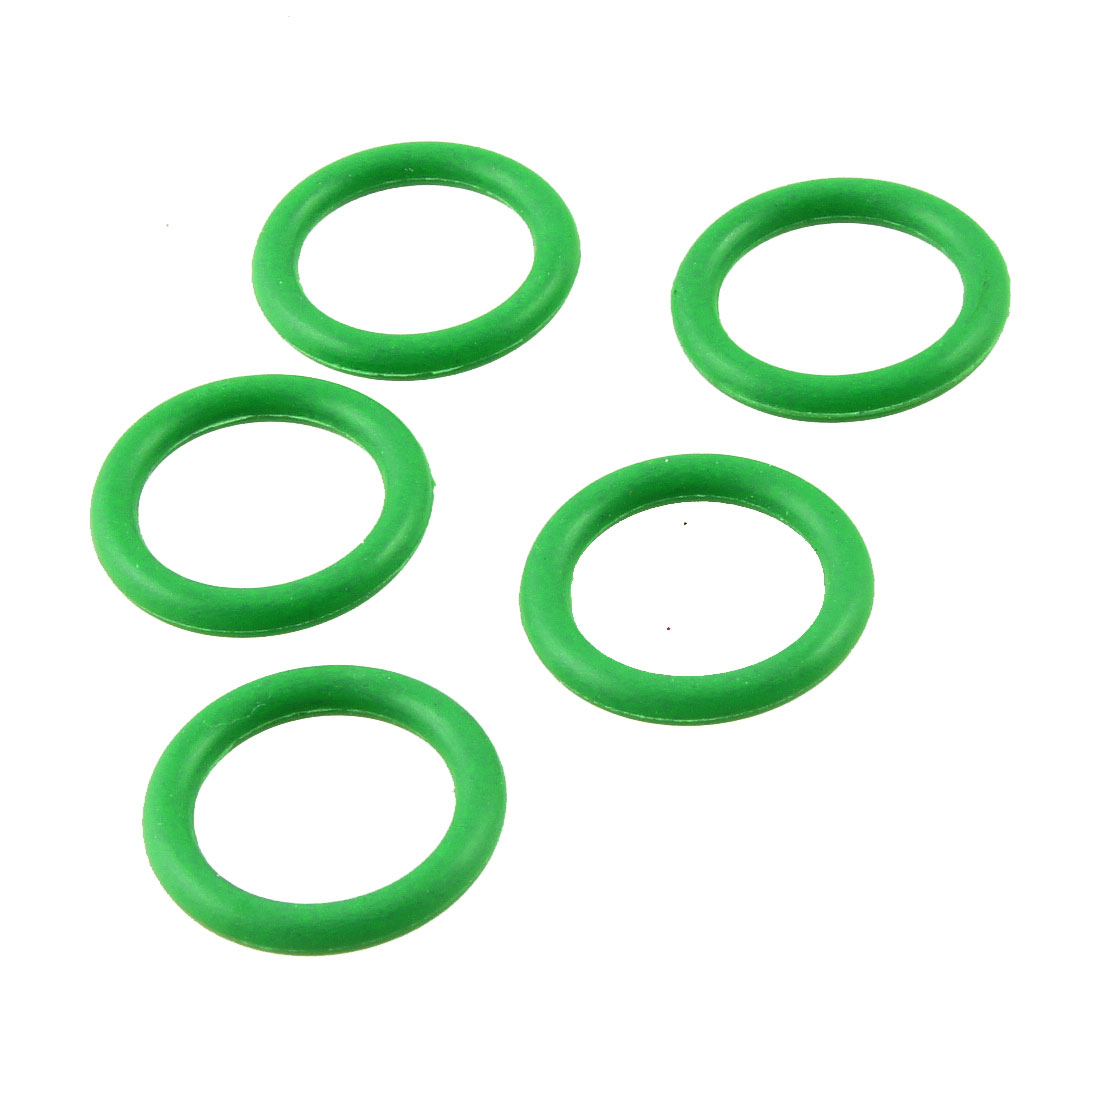 Mechanical Green Rubber O Ring Oil Seal Gaskets 21mm Outside Dia. 5 Pcs